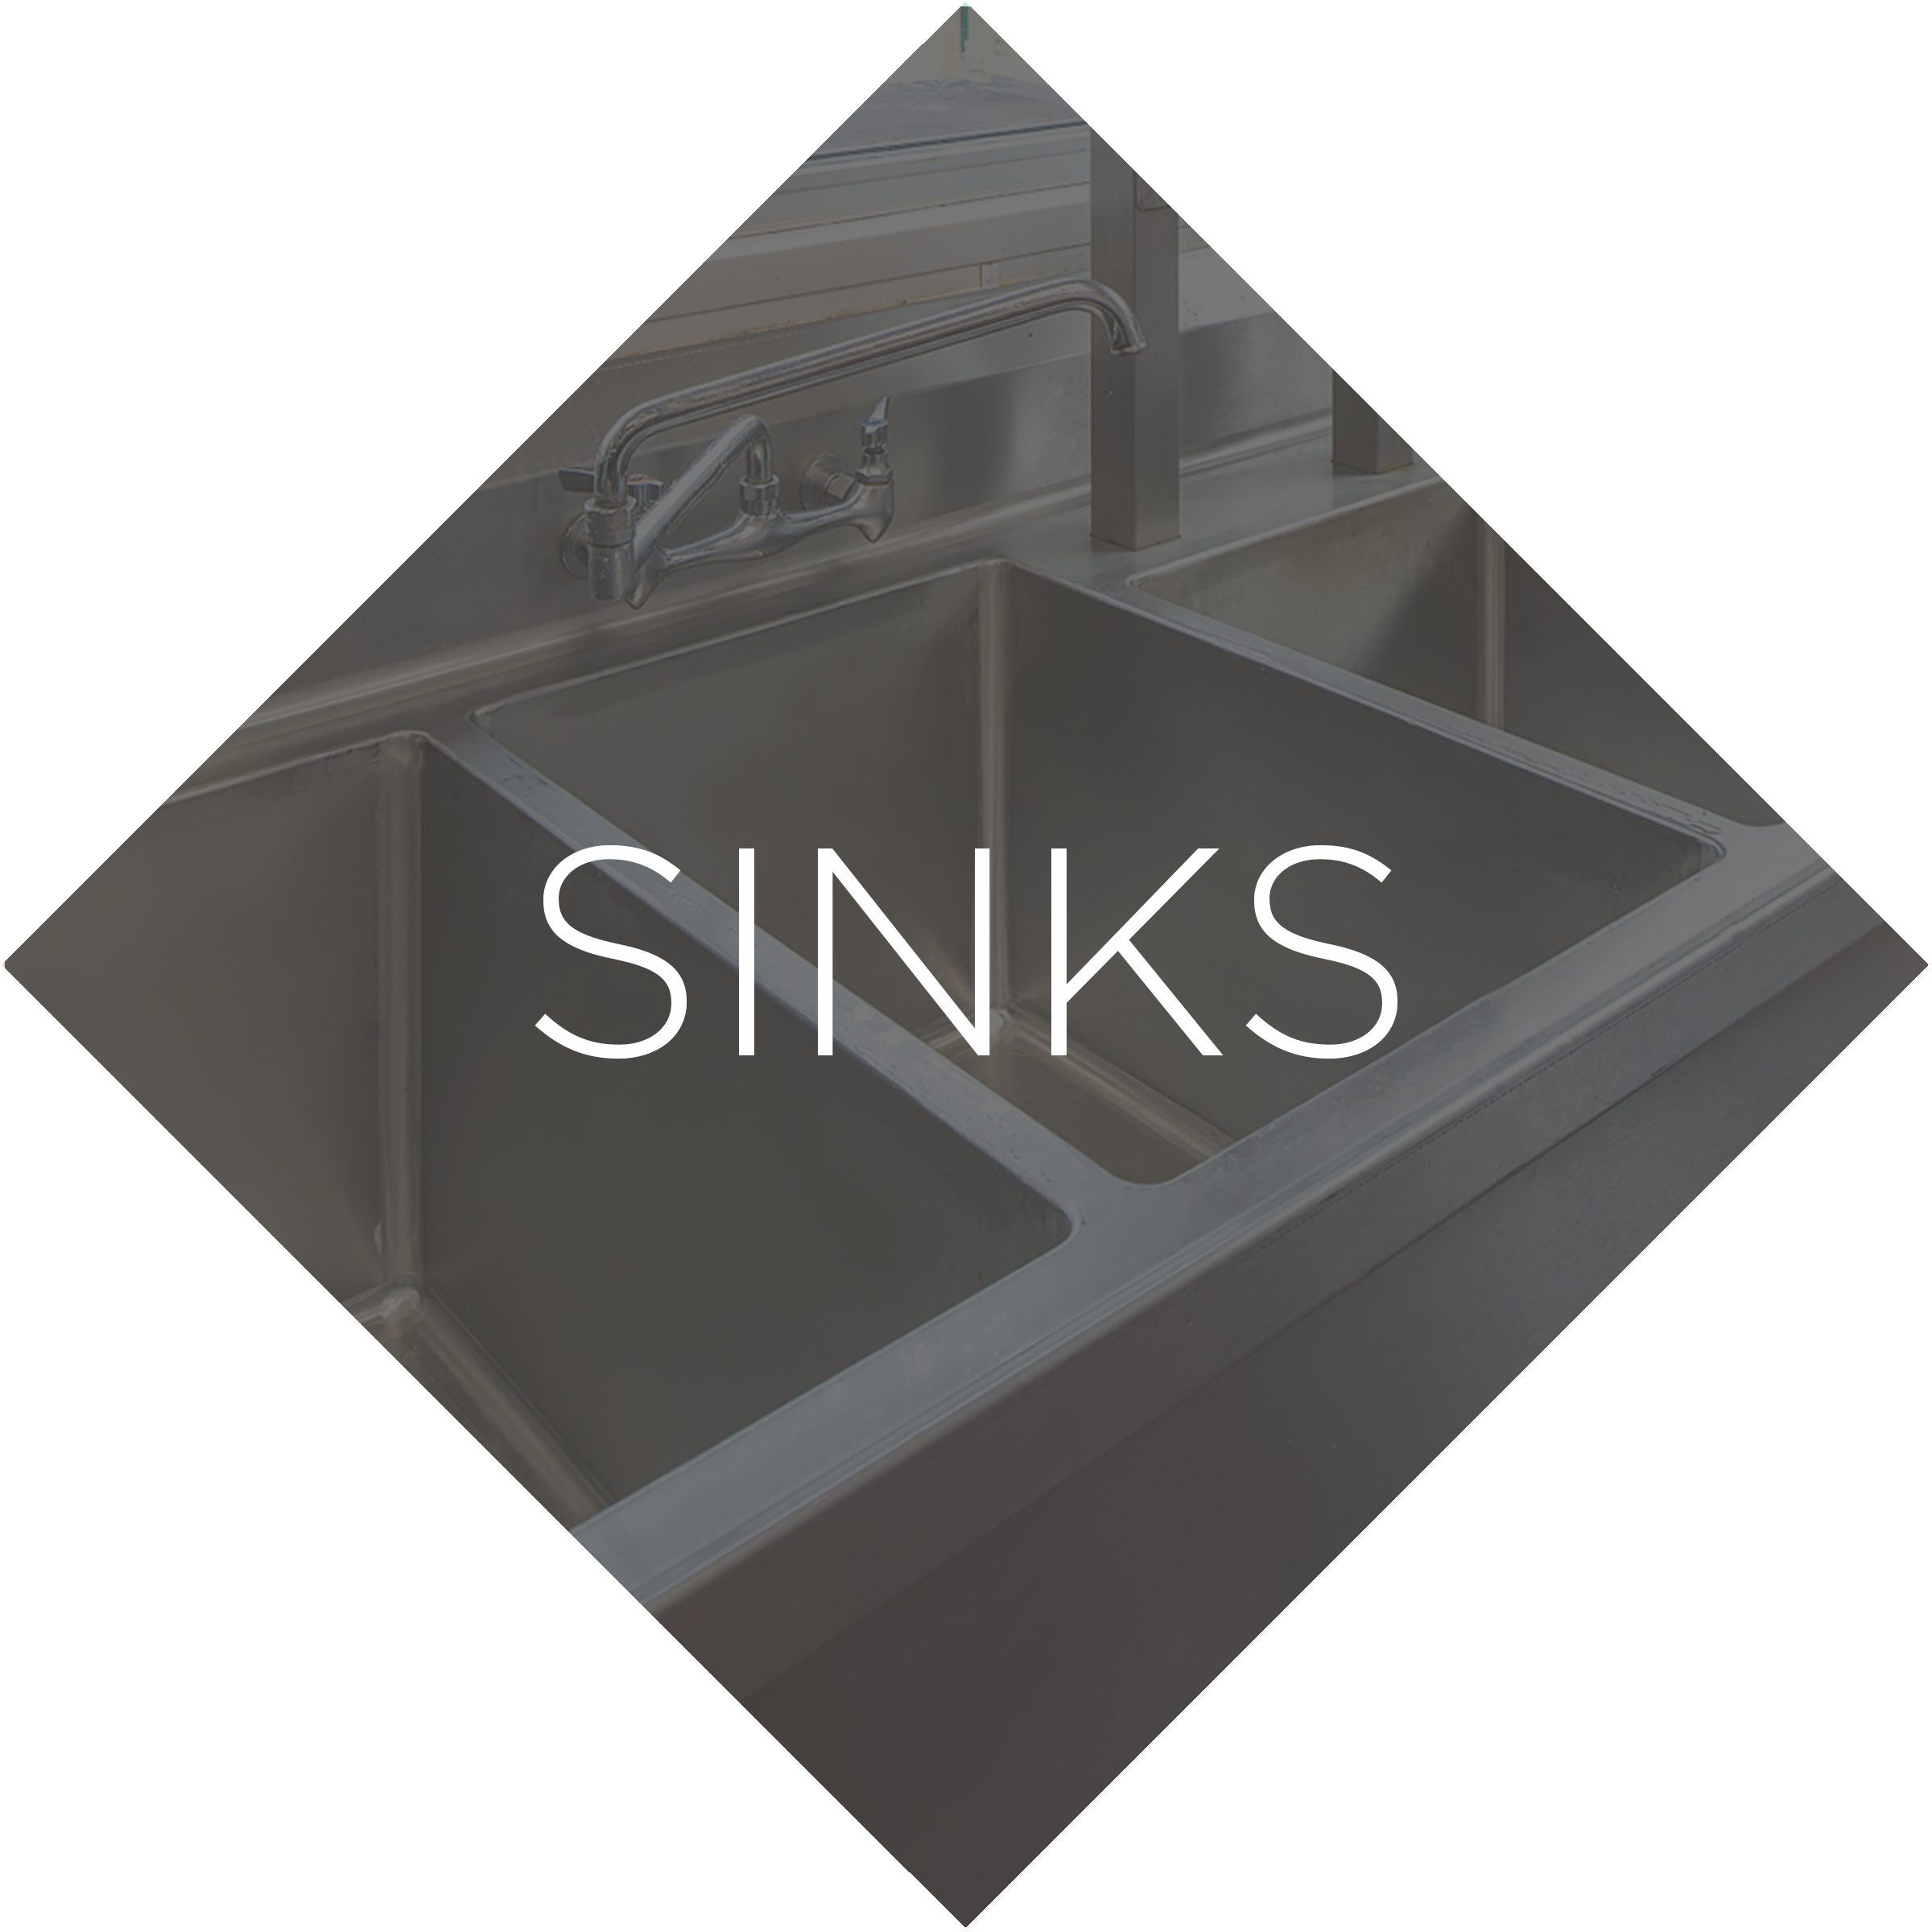 Sinks.png